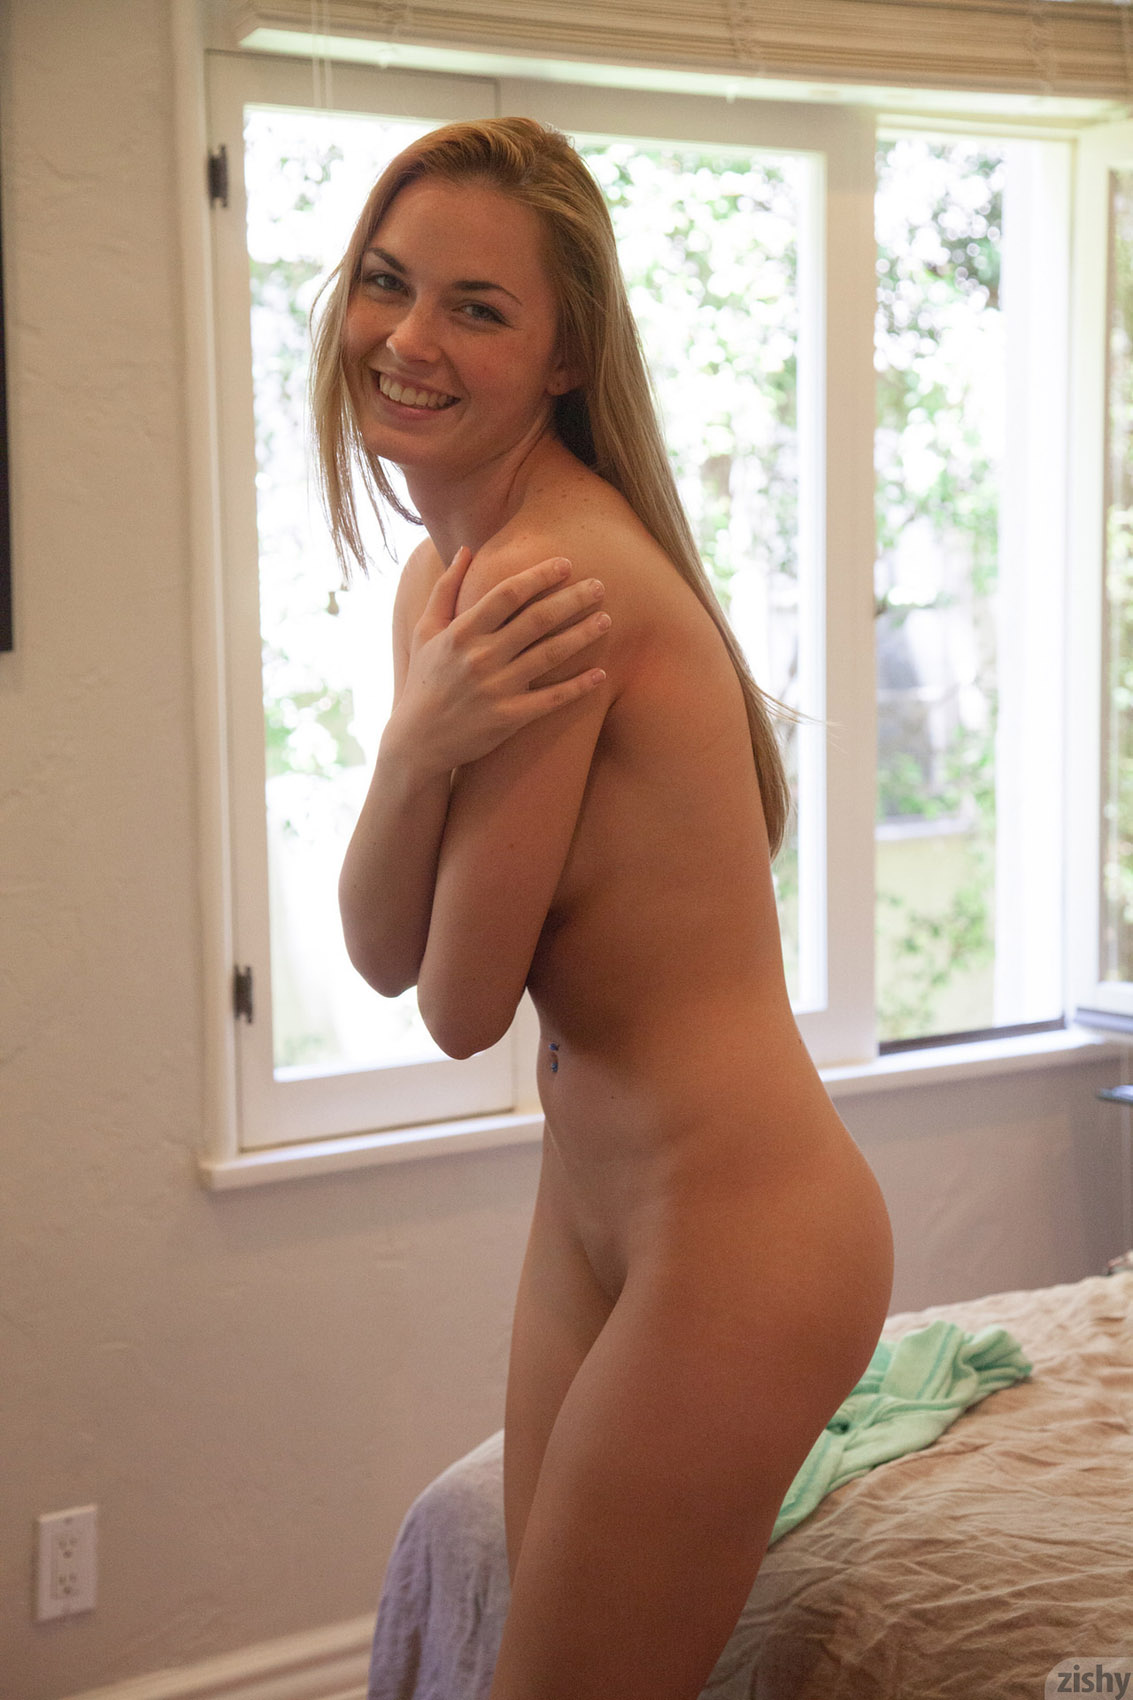 shy and naked girls shower